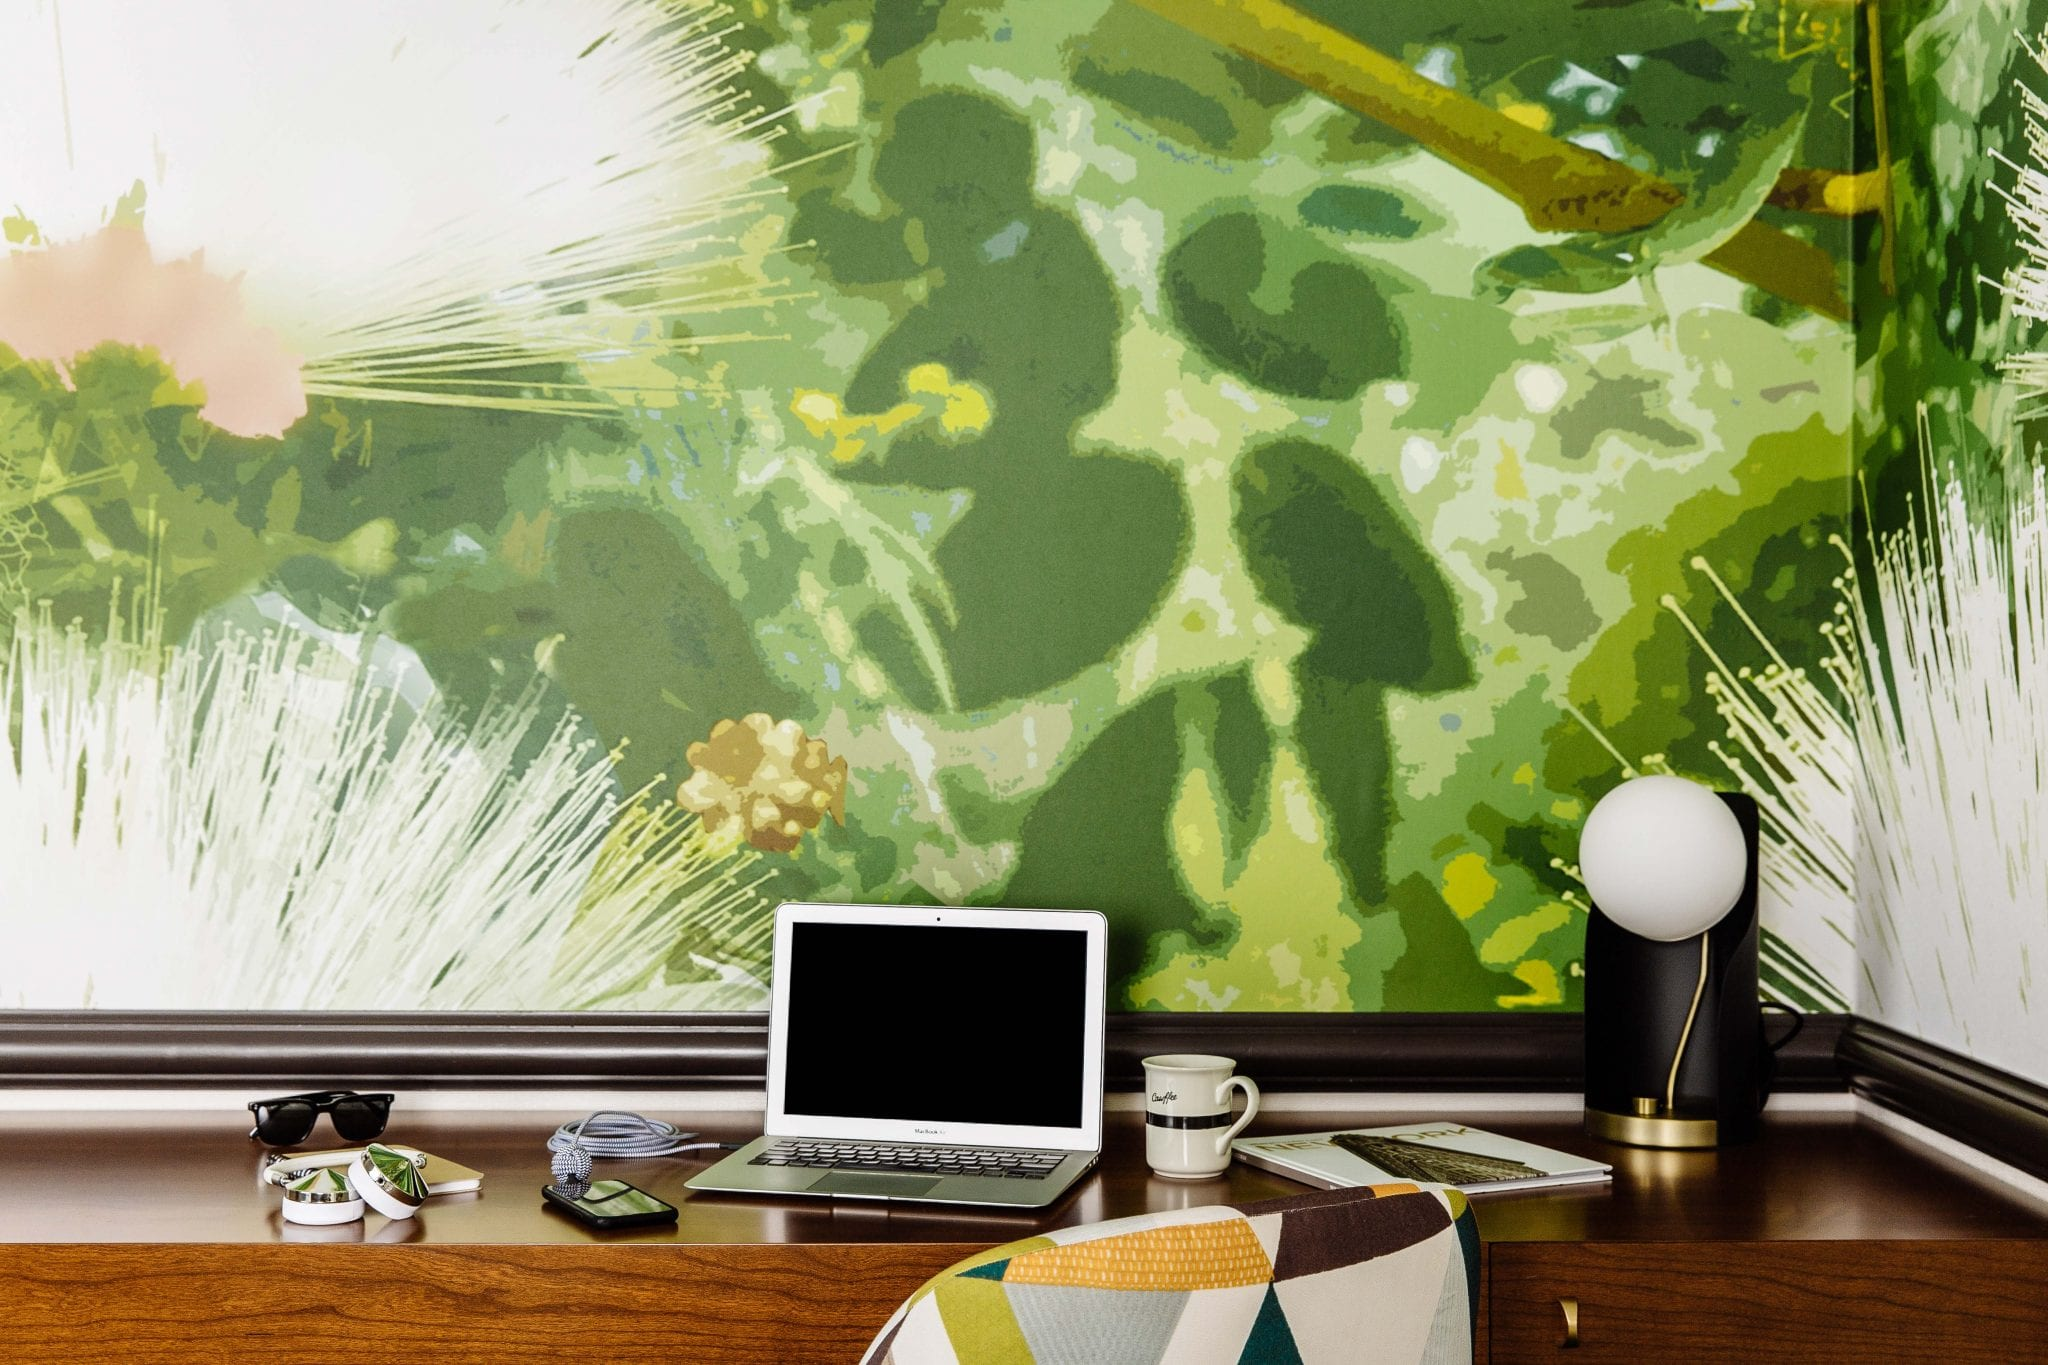 A desk setup for work inside Affinia Gardens Hotel suite. A laptop is set up, with a cup of coffee beside. A green mural is painted along the entire walls of this corner.